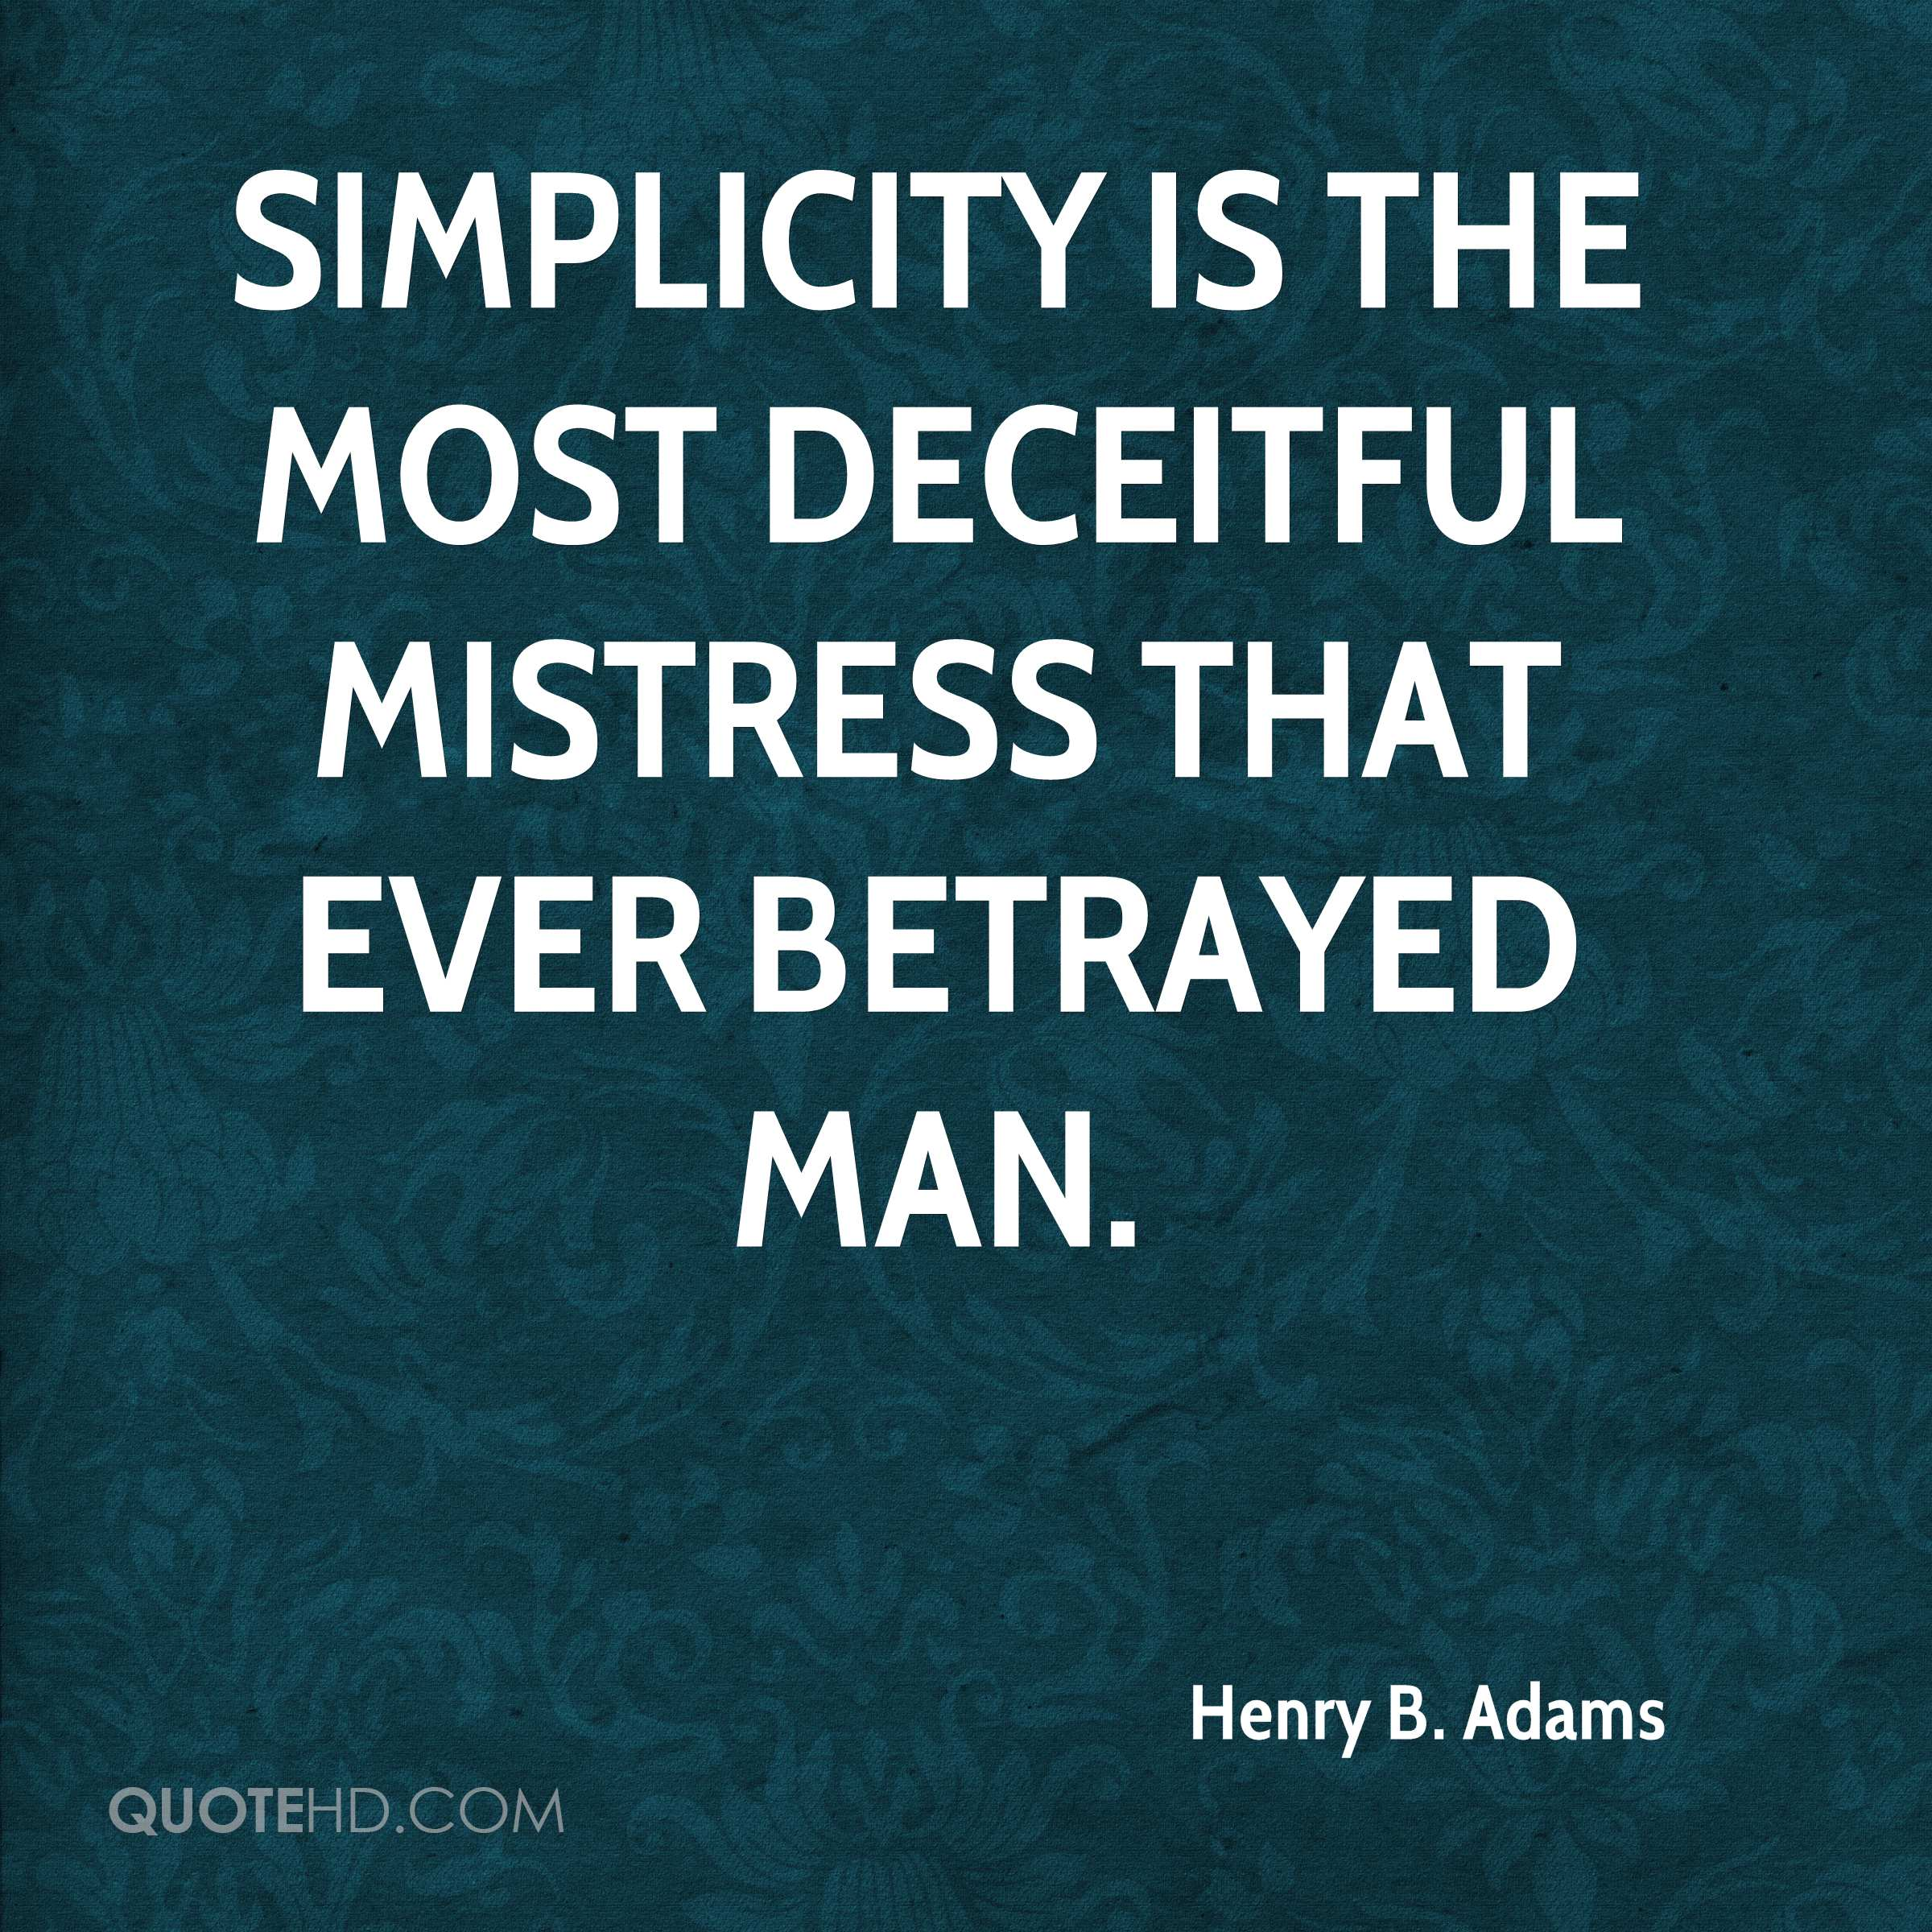 Simplicity is the most deceitful mistress that ever betrayed man.